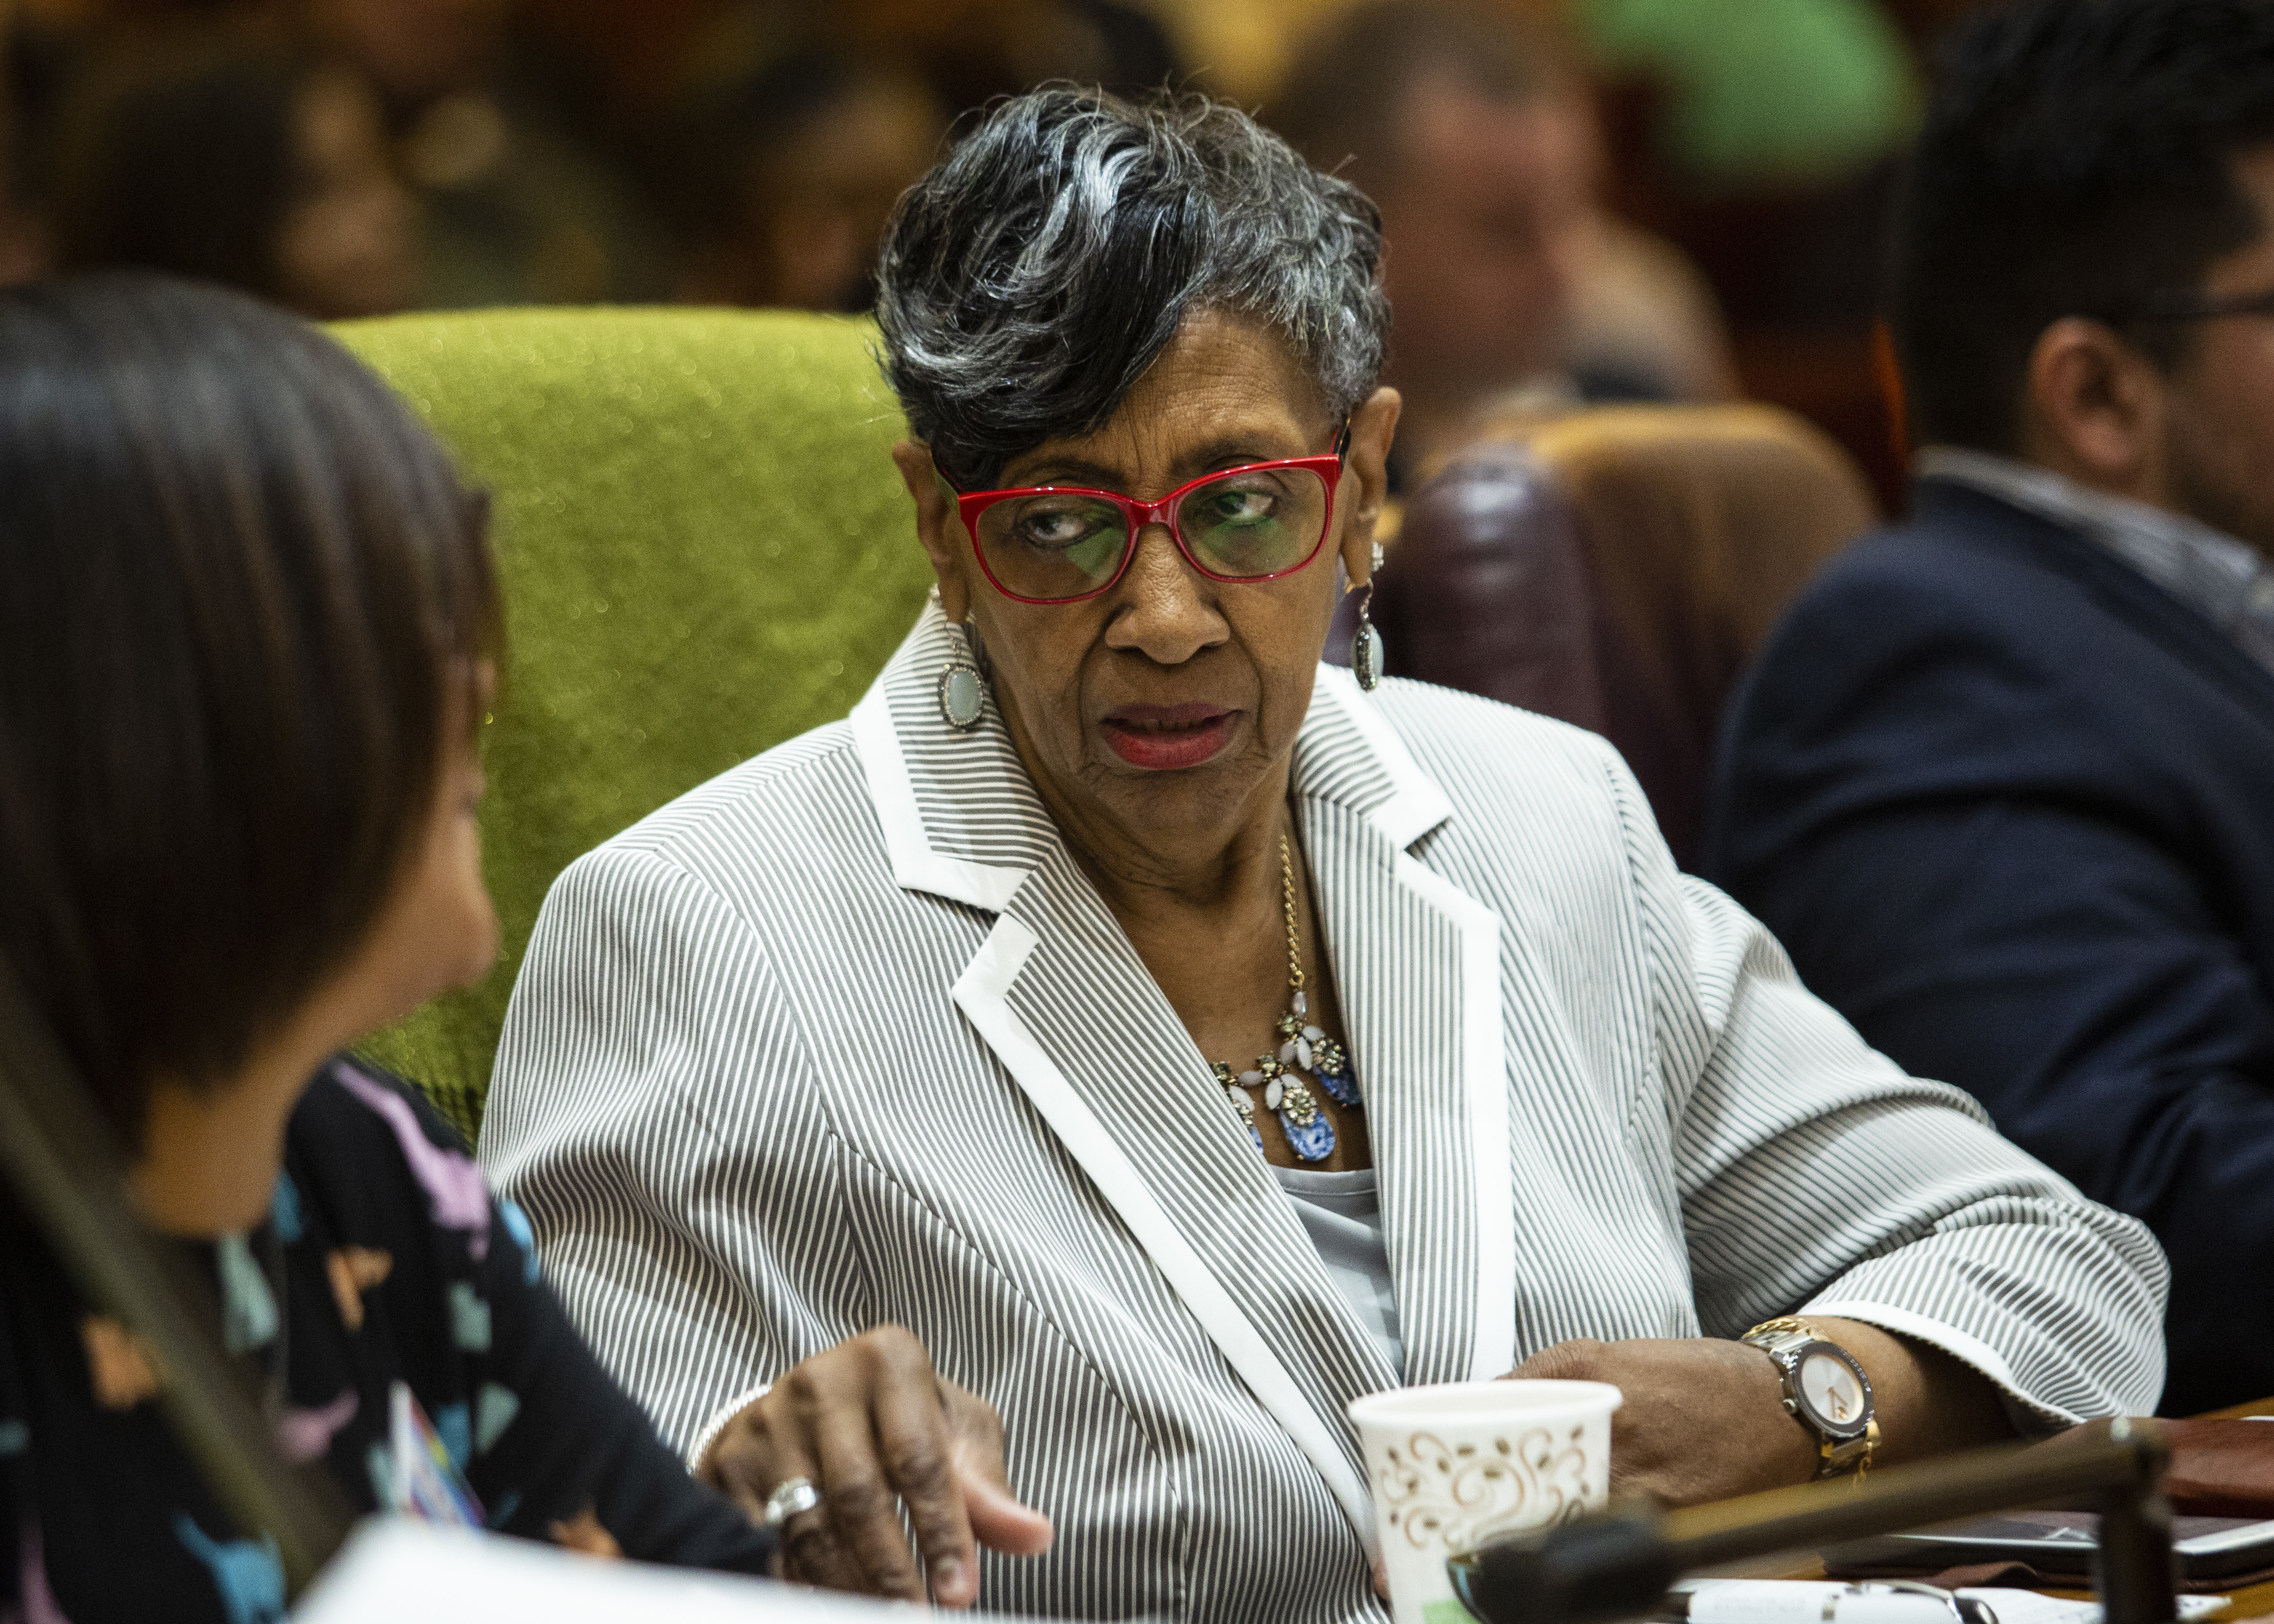 Ald. Carrie Austin (34th) talks to a colleague at the Council meeting Jun 12, two weeks after her South Side ward office was raided by the feds.